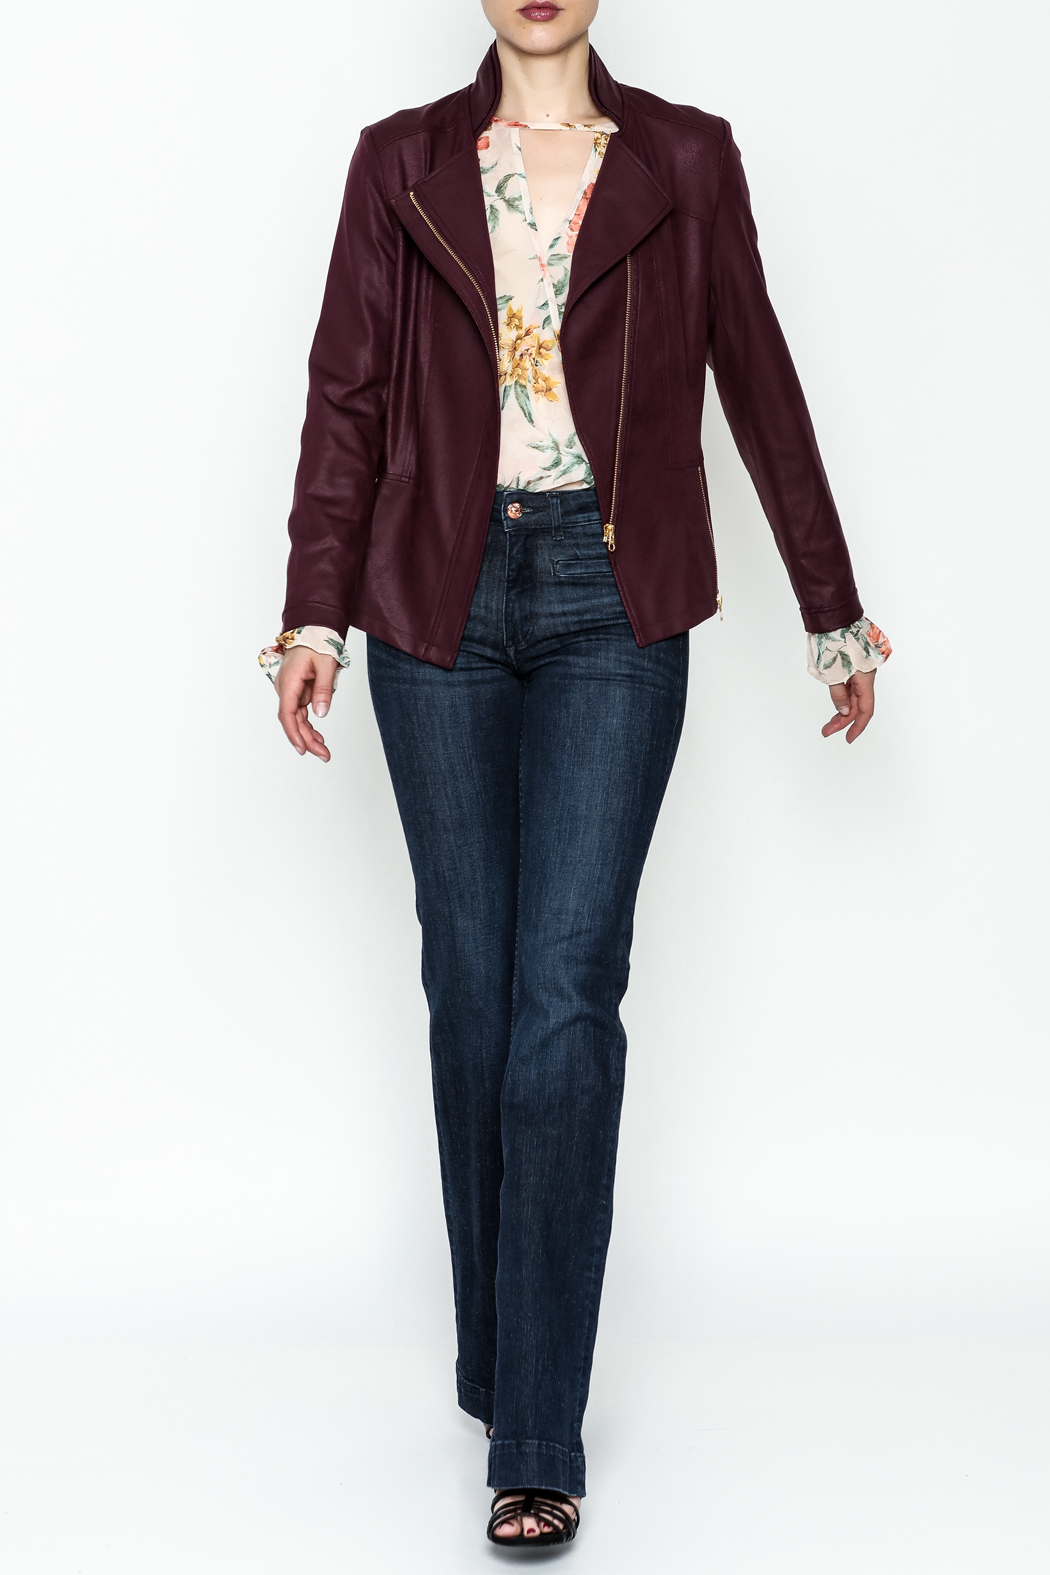 Clara Sunwoo Liquid Leather Jacket - Side Cropped Image